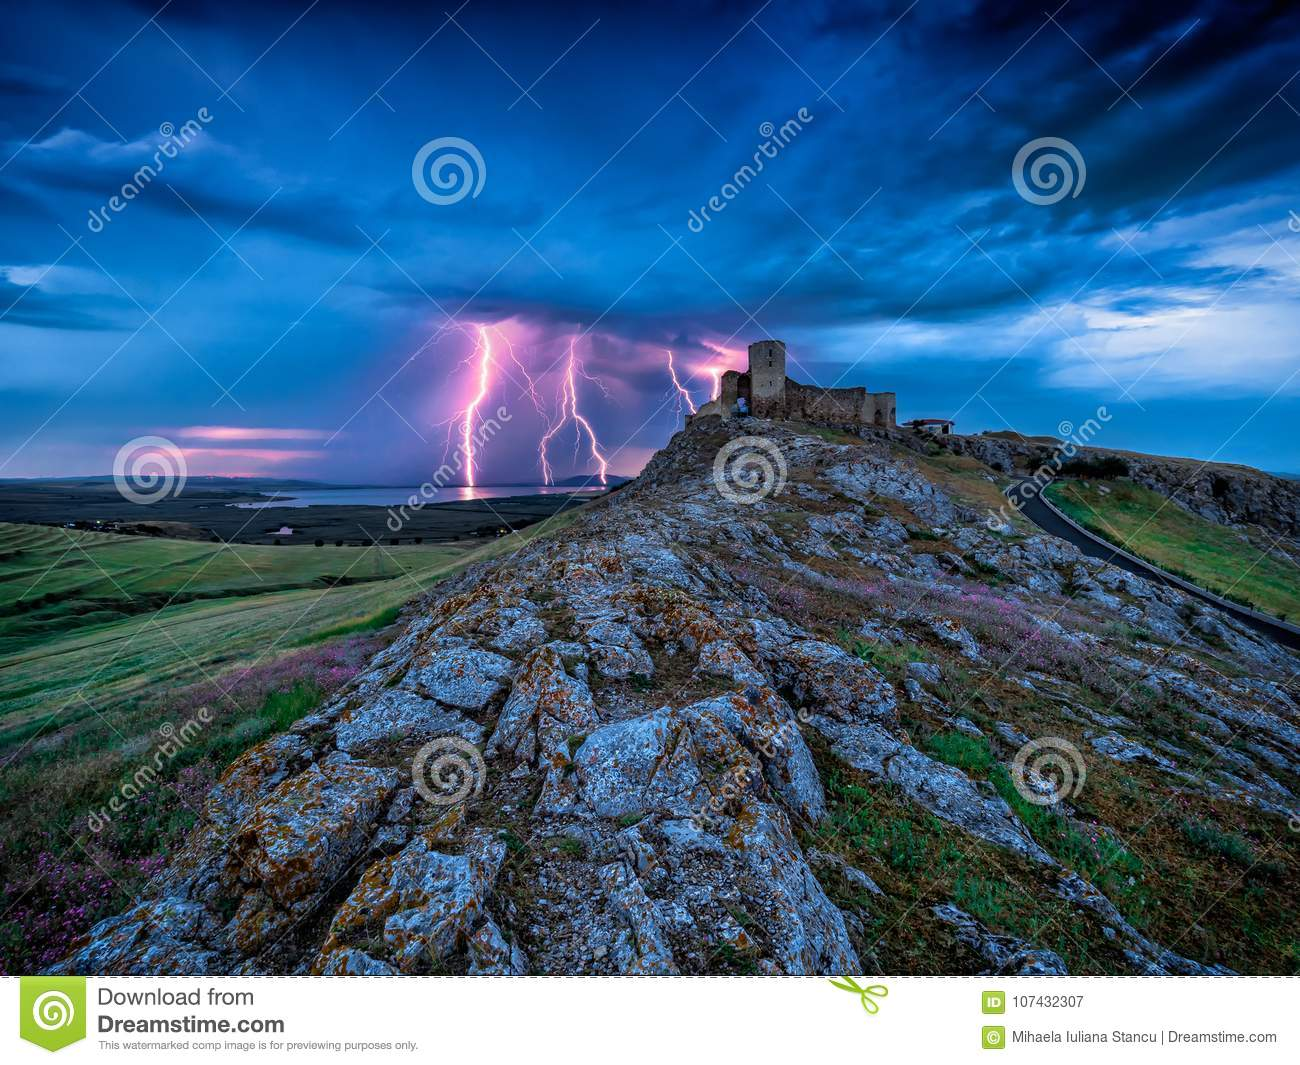 Thunderbolts lightning on a cloudy evening blue sky over old Enisala stronghold citadel